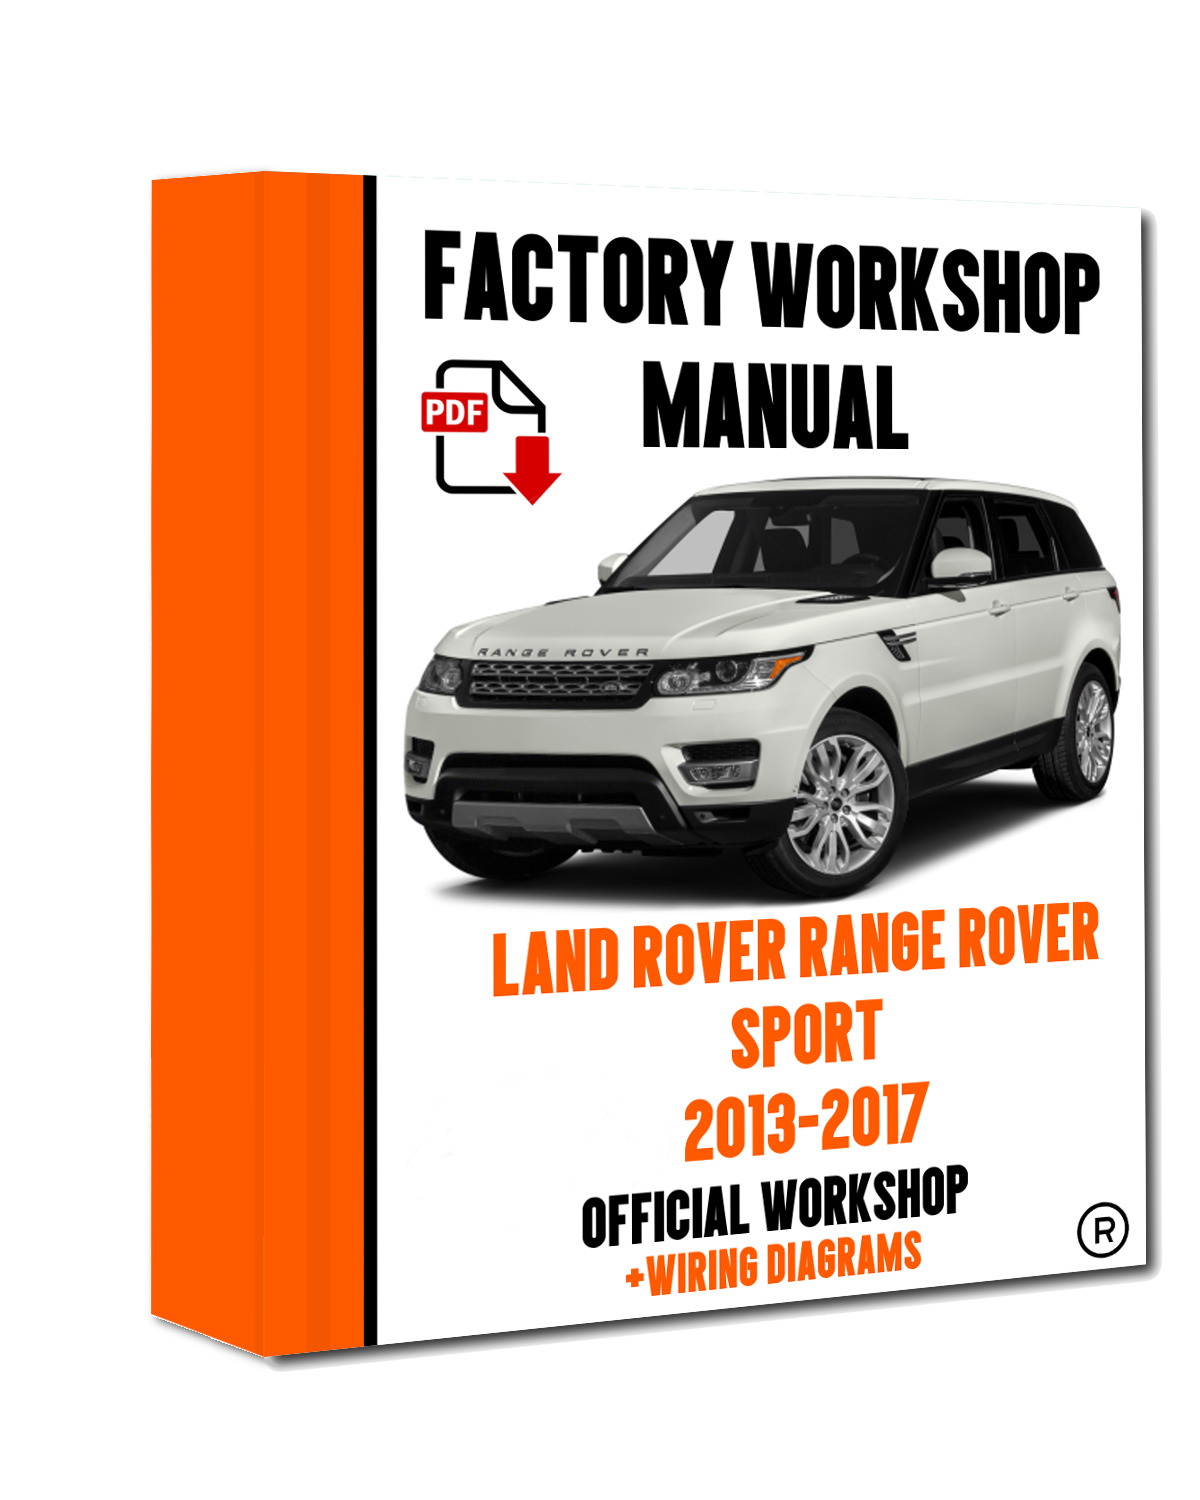 OFFICIAL WORKSHOP Manual Service Repair Land Rover Range Rover Sport  2013-201x 1 di 6Spedizione gratuita Vedi Altro